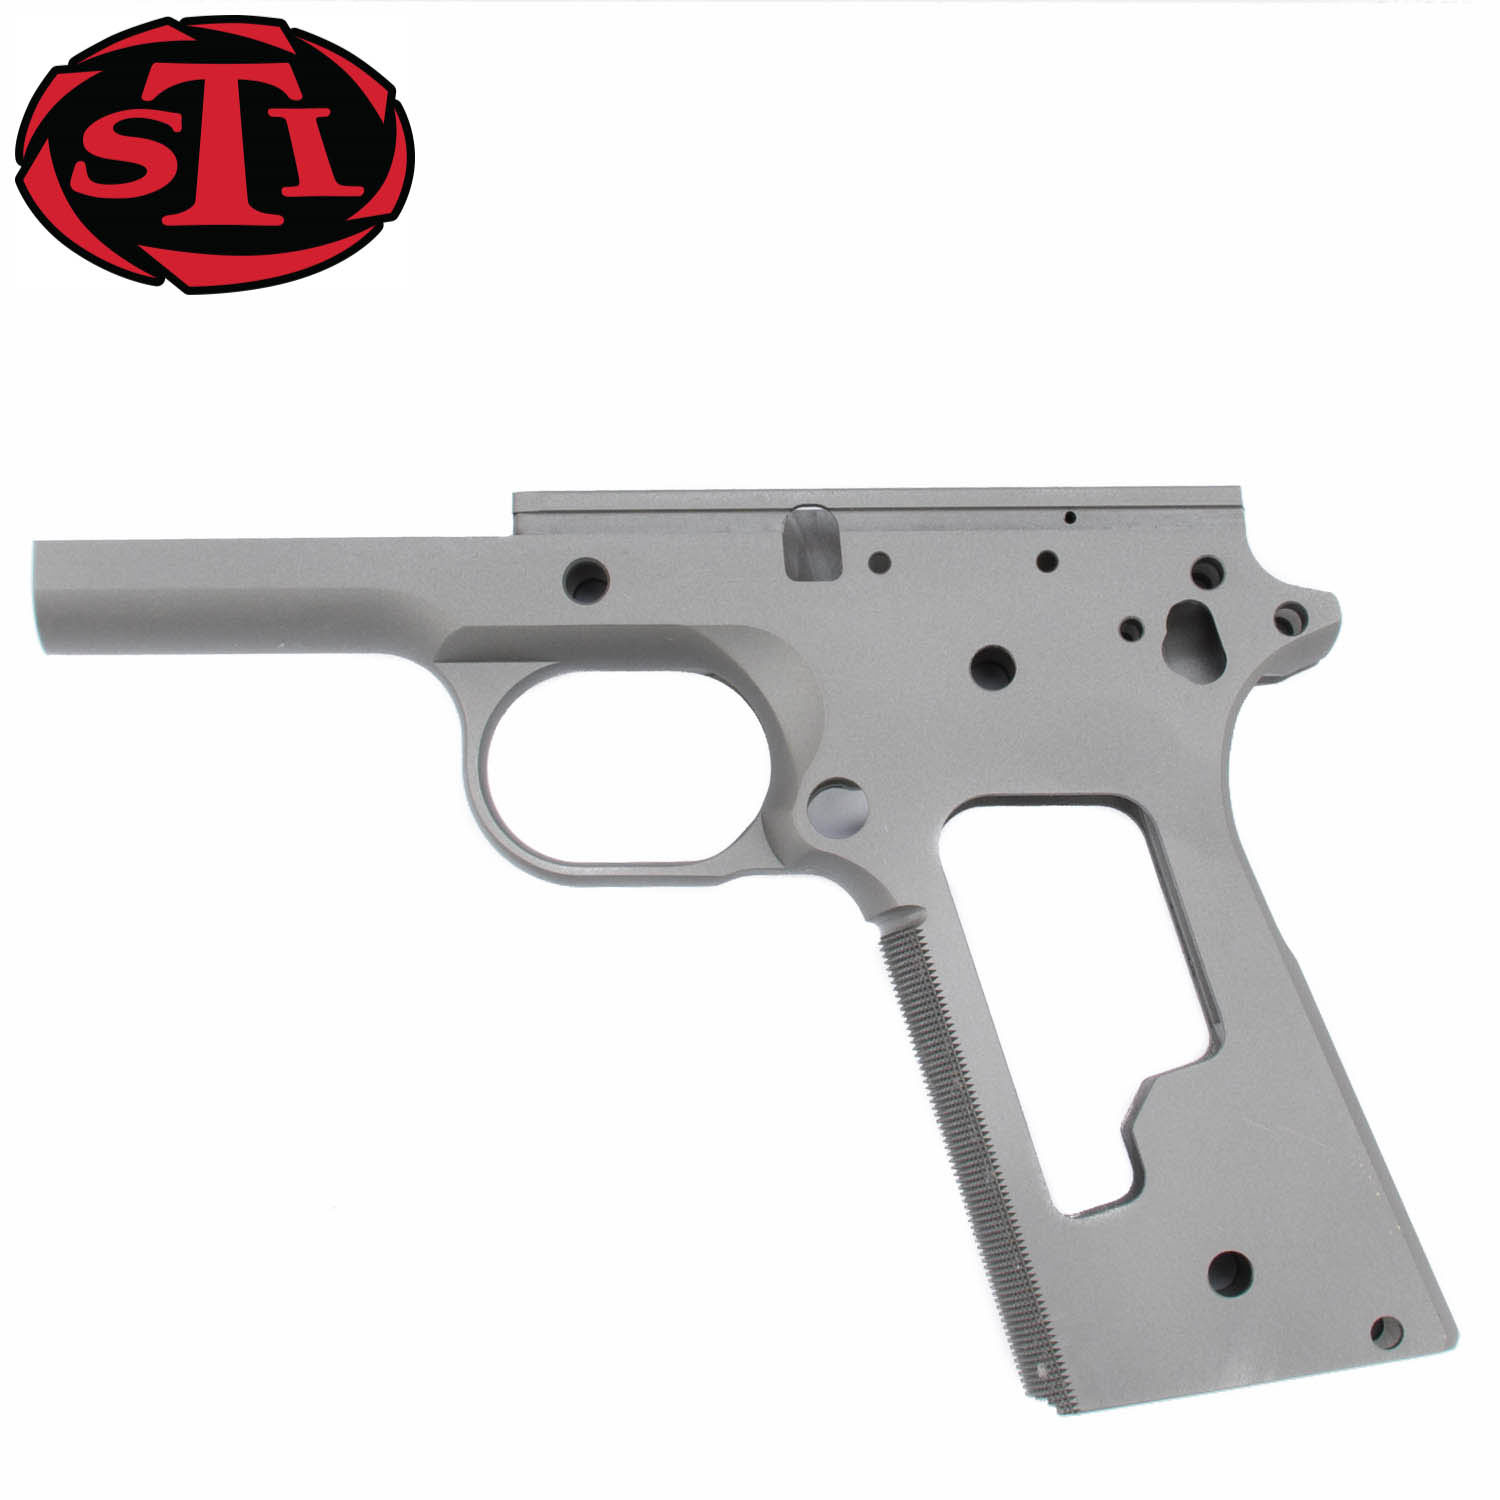 STI 1911 Frame, Forged Steel Standard Ramped, Checkered: MGW